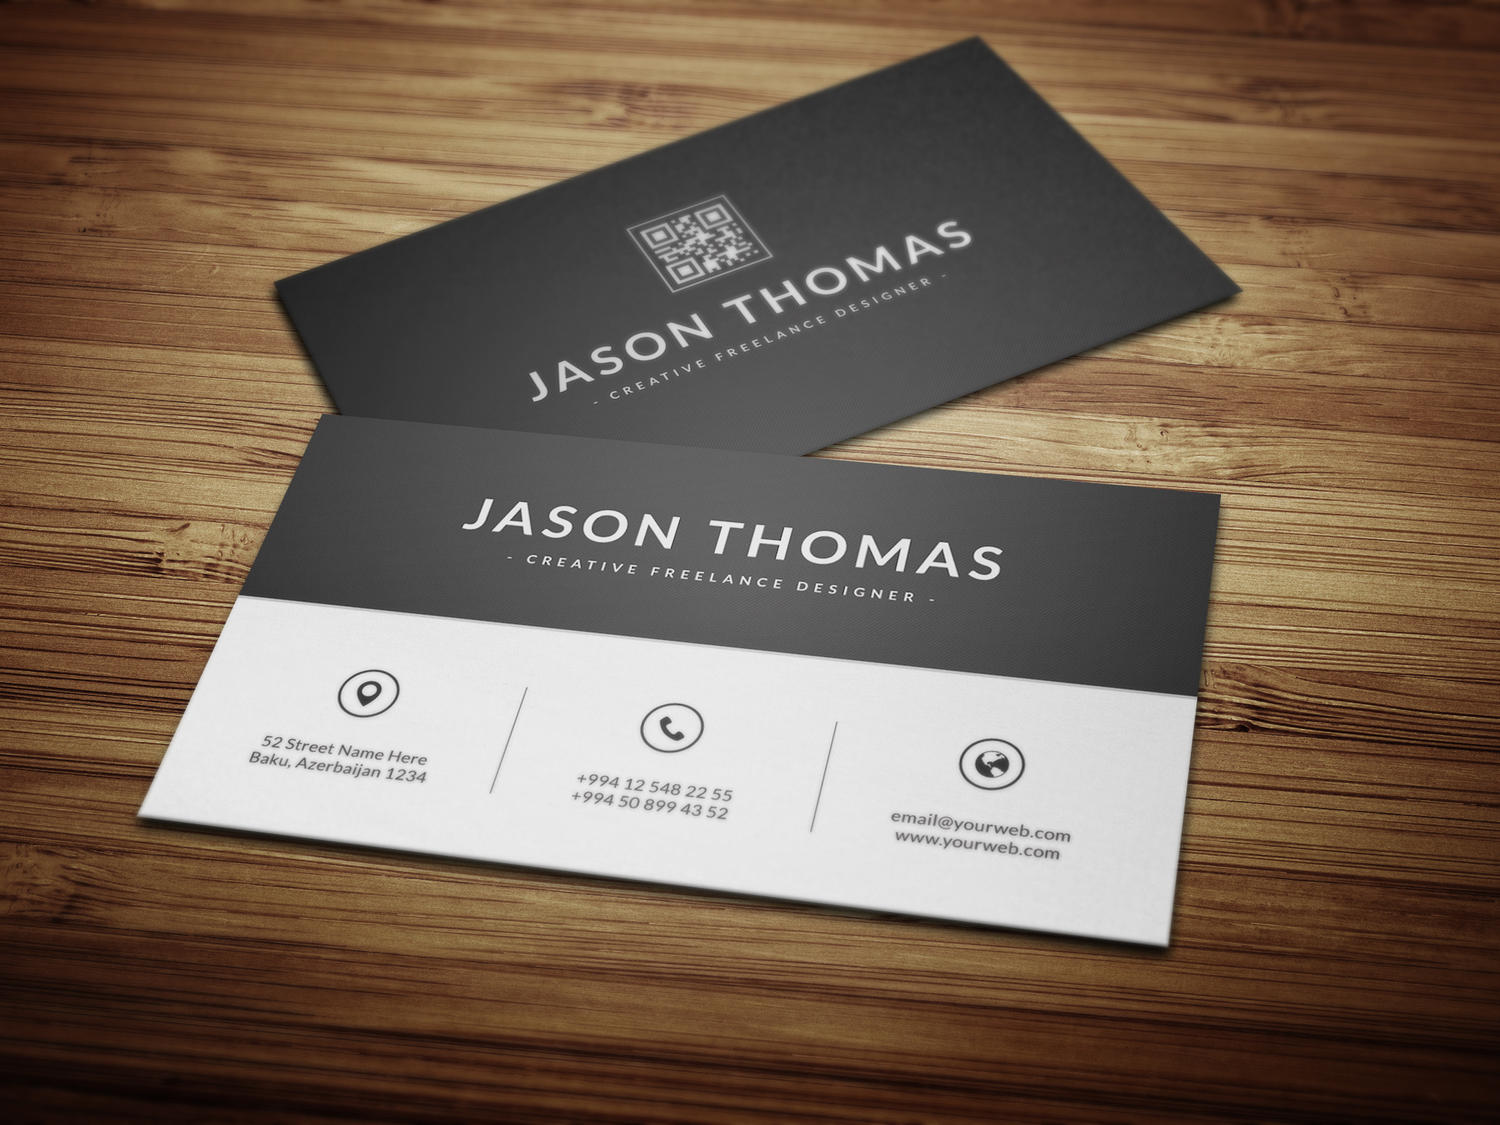 Professional business cards designs 33 creative business card designs veckr professional colourmoves